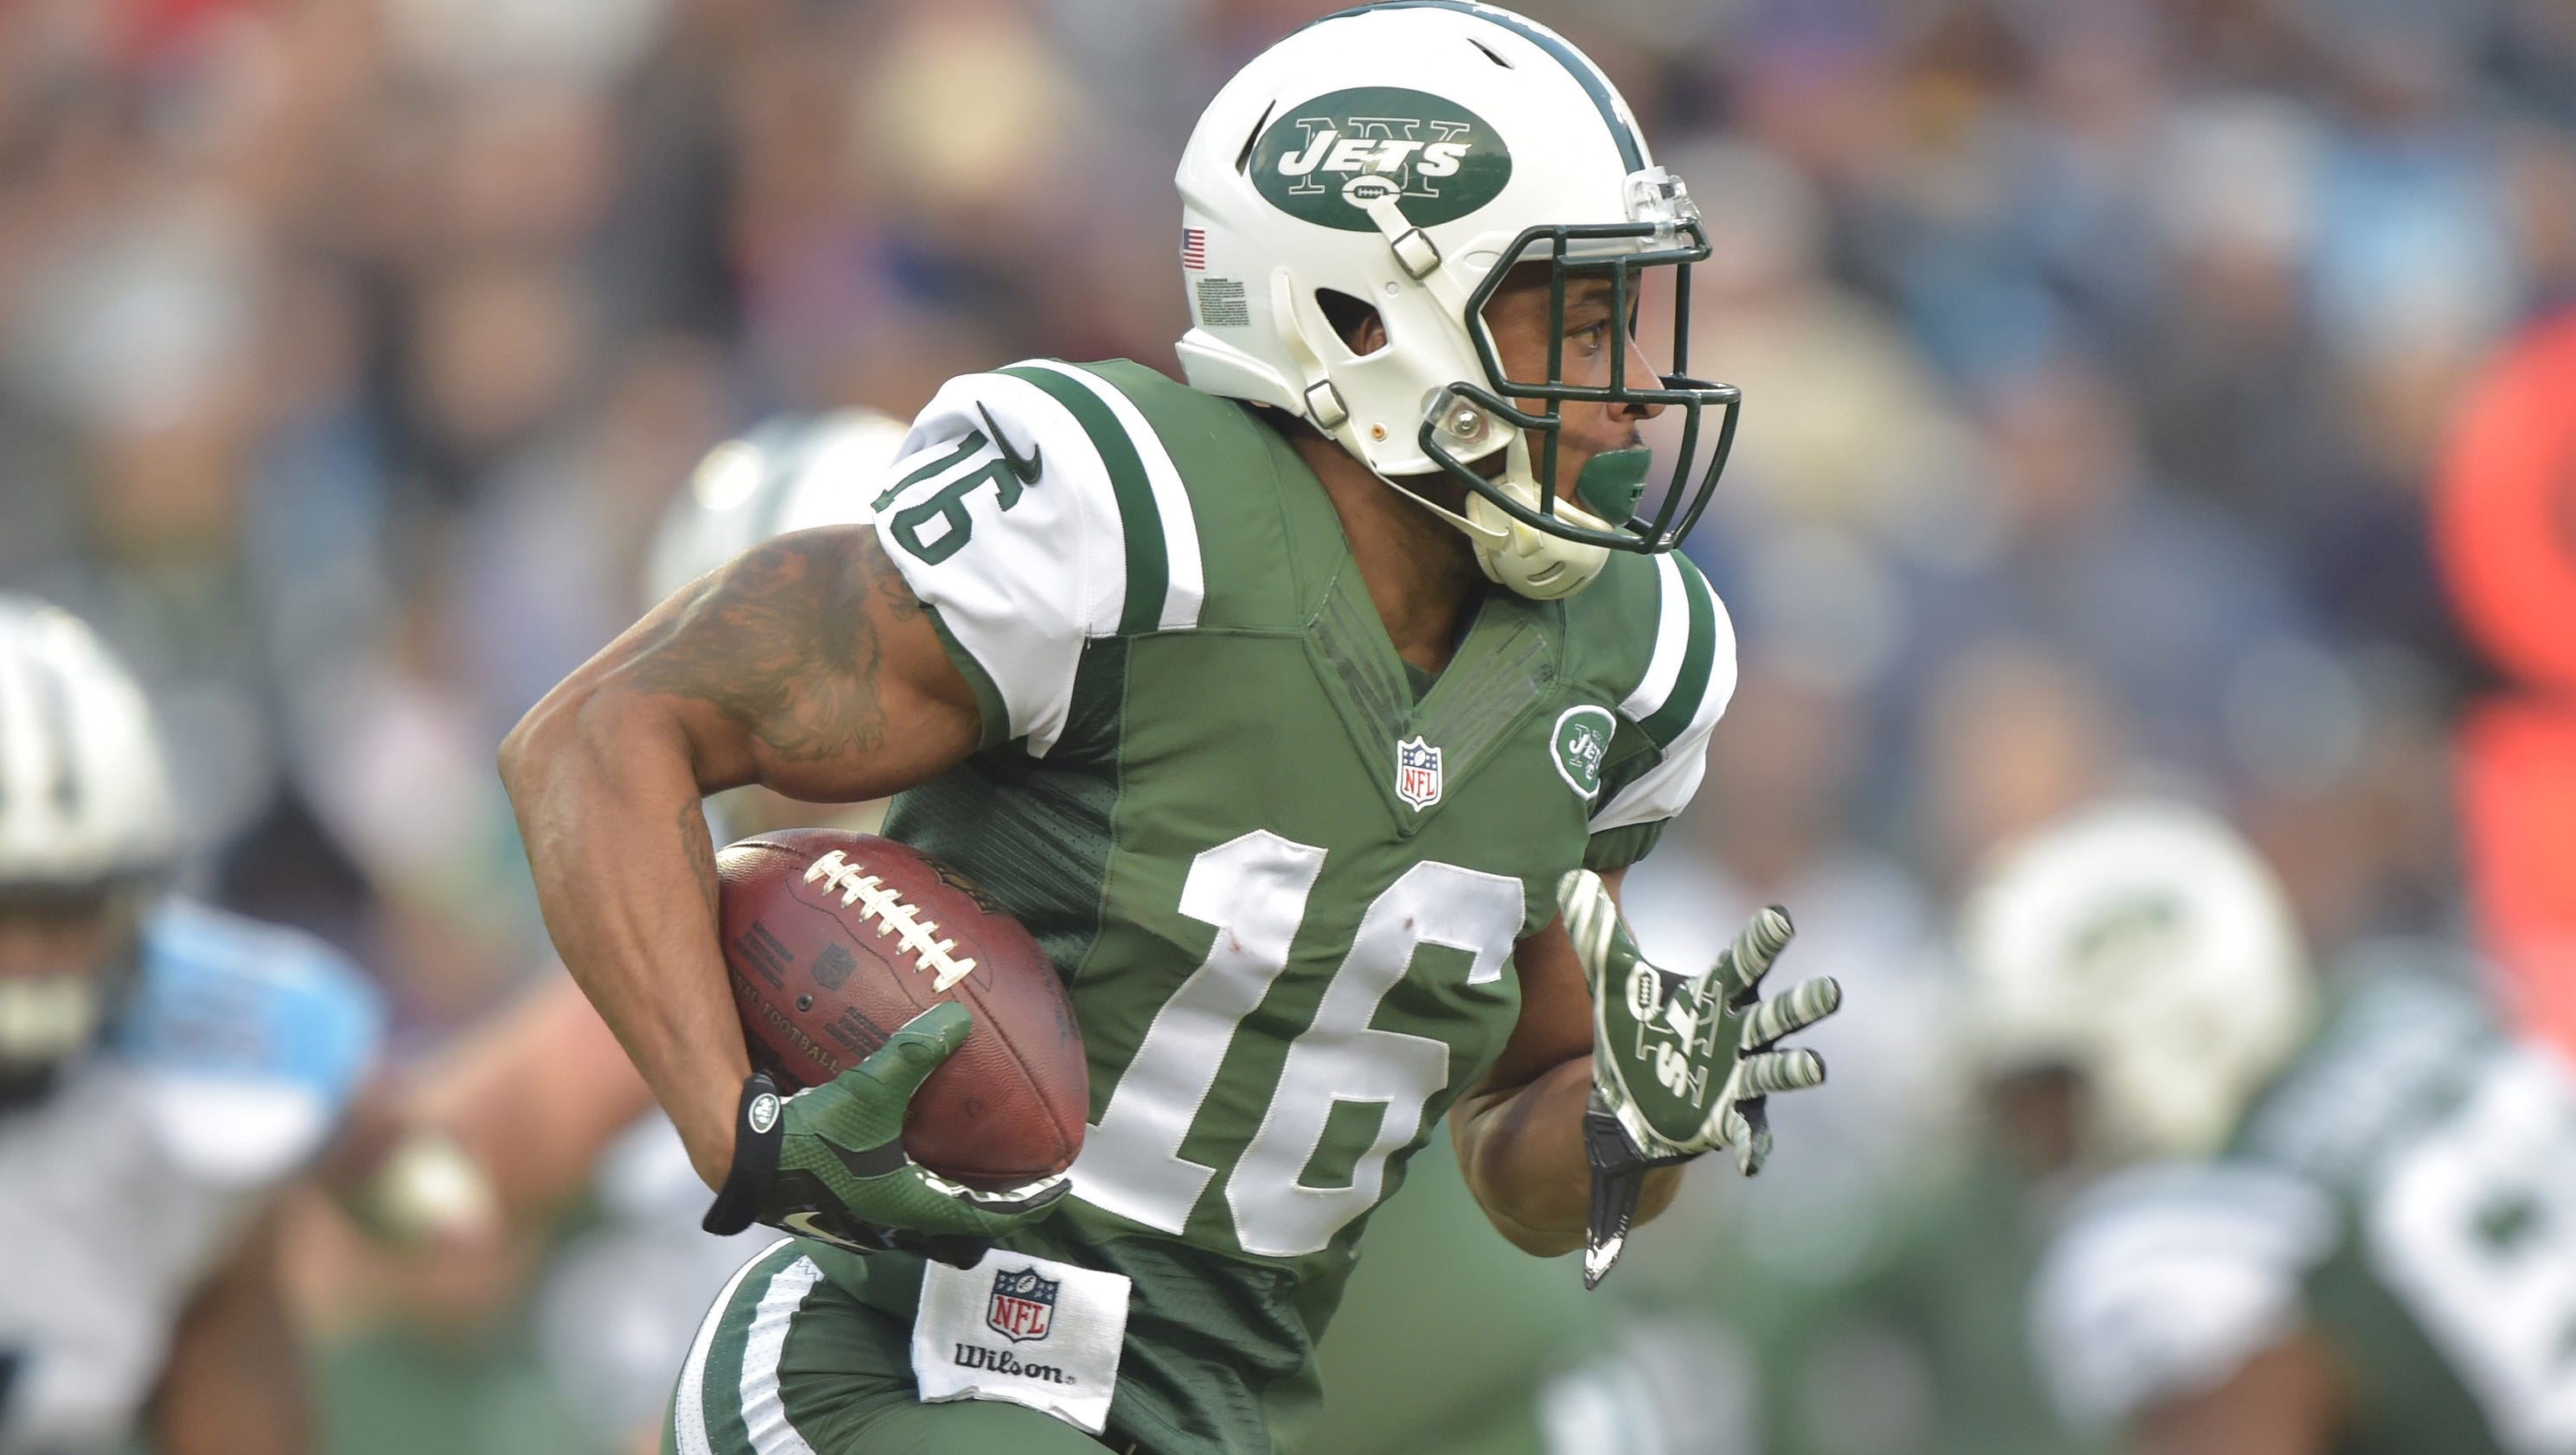 jets cut wr kr percy harvin rather than pay him 10 5m for. Black Bedroom Furniture Sets. Home Design Ideas